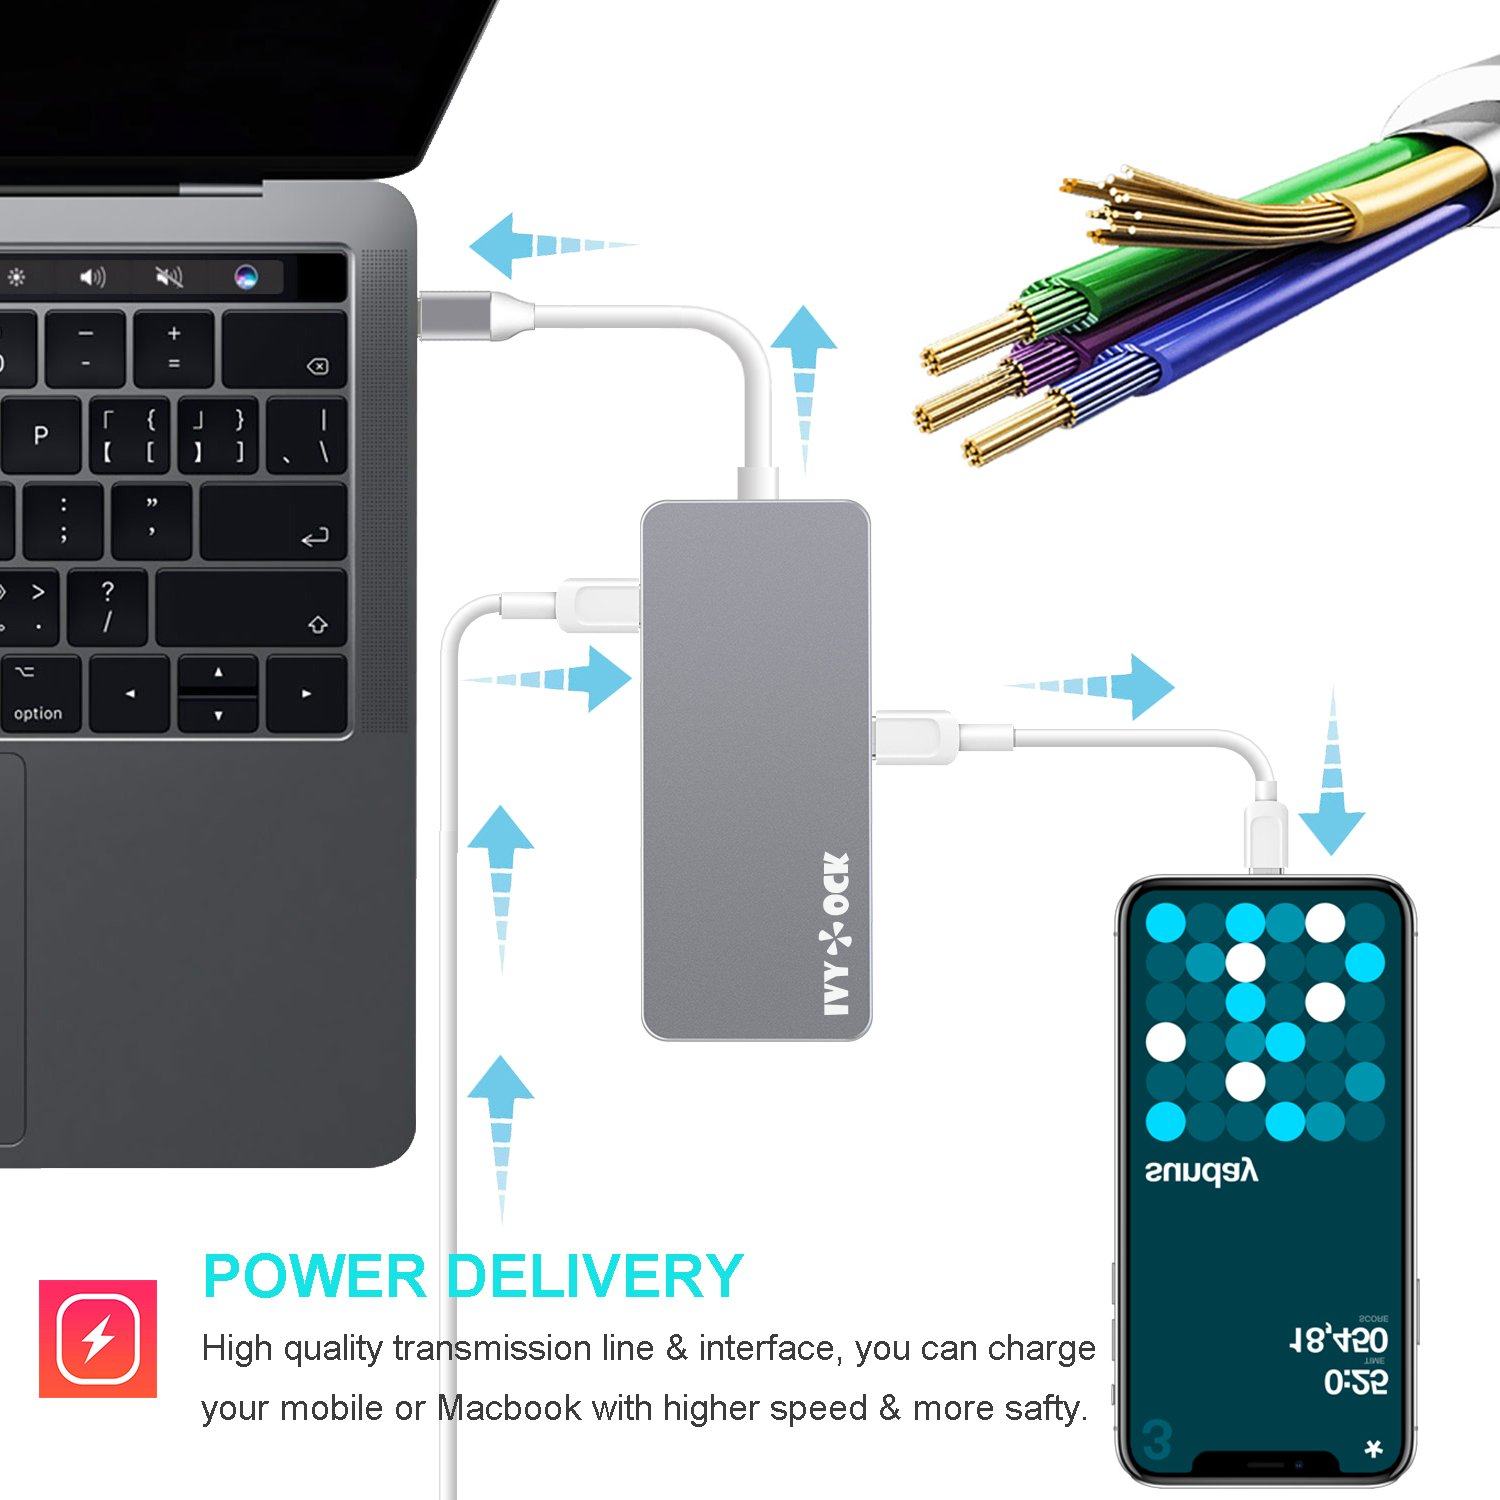 USB C Hub, IVYOCK Type C Hub Dongle with HDMI, Gigabit Ethernet, Type-C Charging Port, USB 3.0/2.0 Ports, SD/Micro SD Card Reader, USB-C Adapter for MacBook Pro/Pixelbook/Dell XPS/Yoga and More by IVYOCK (Image #3)